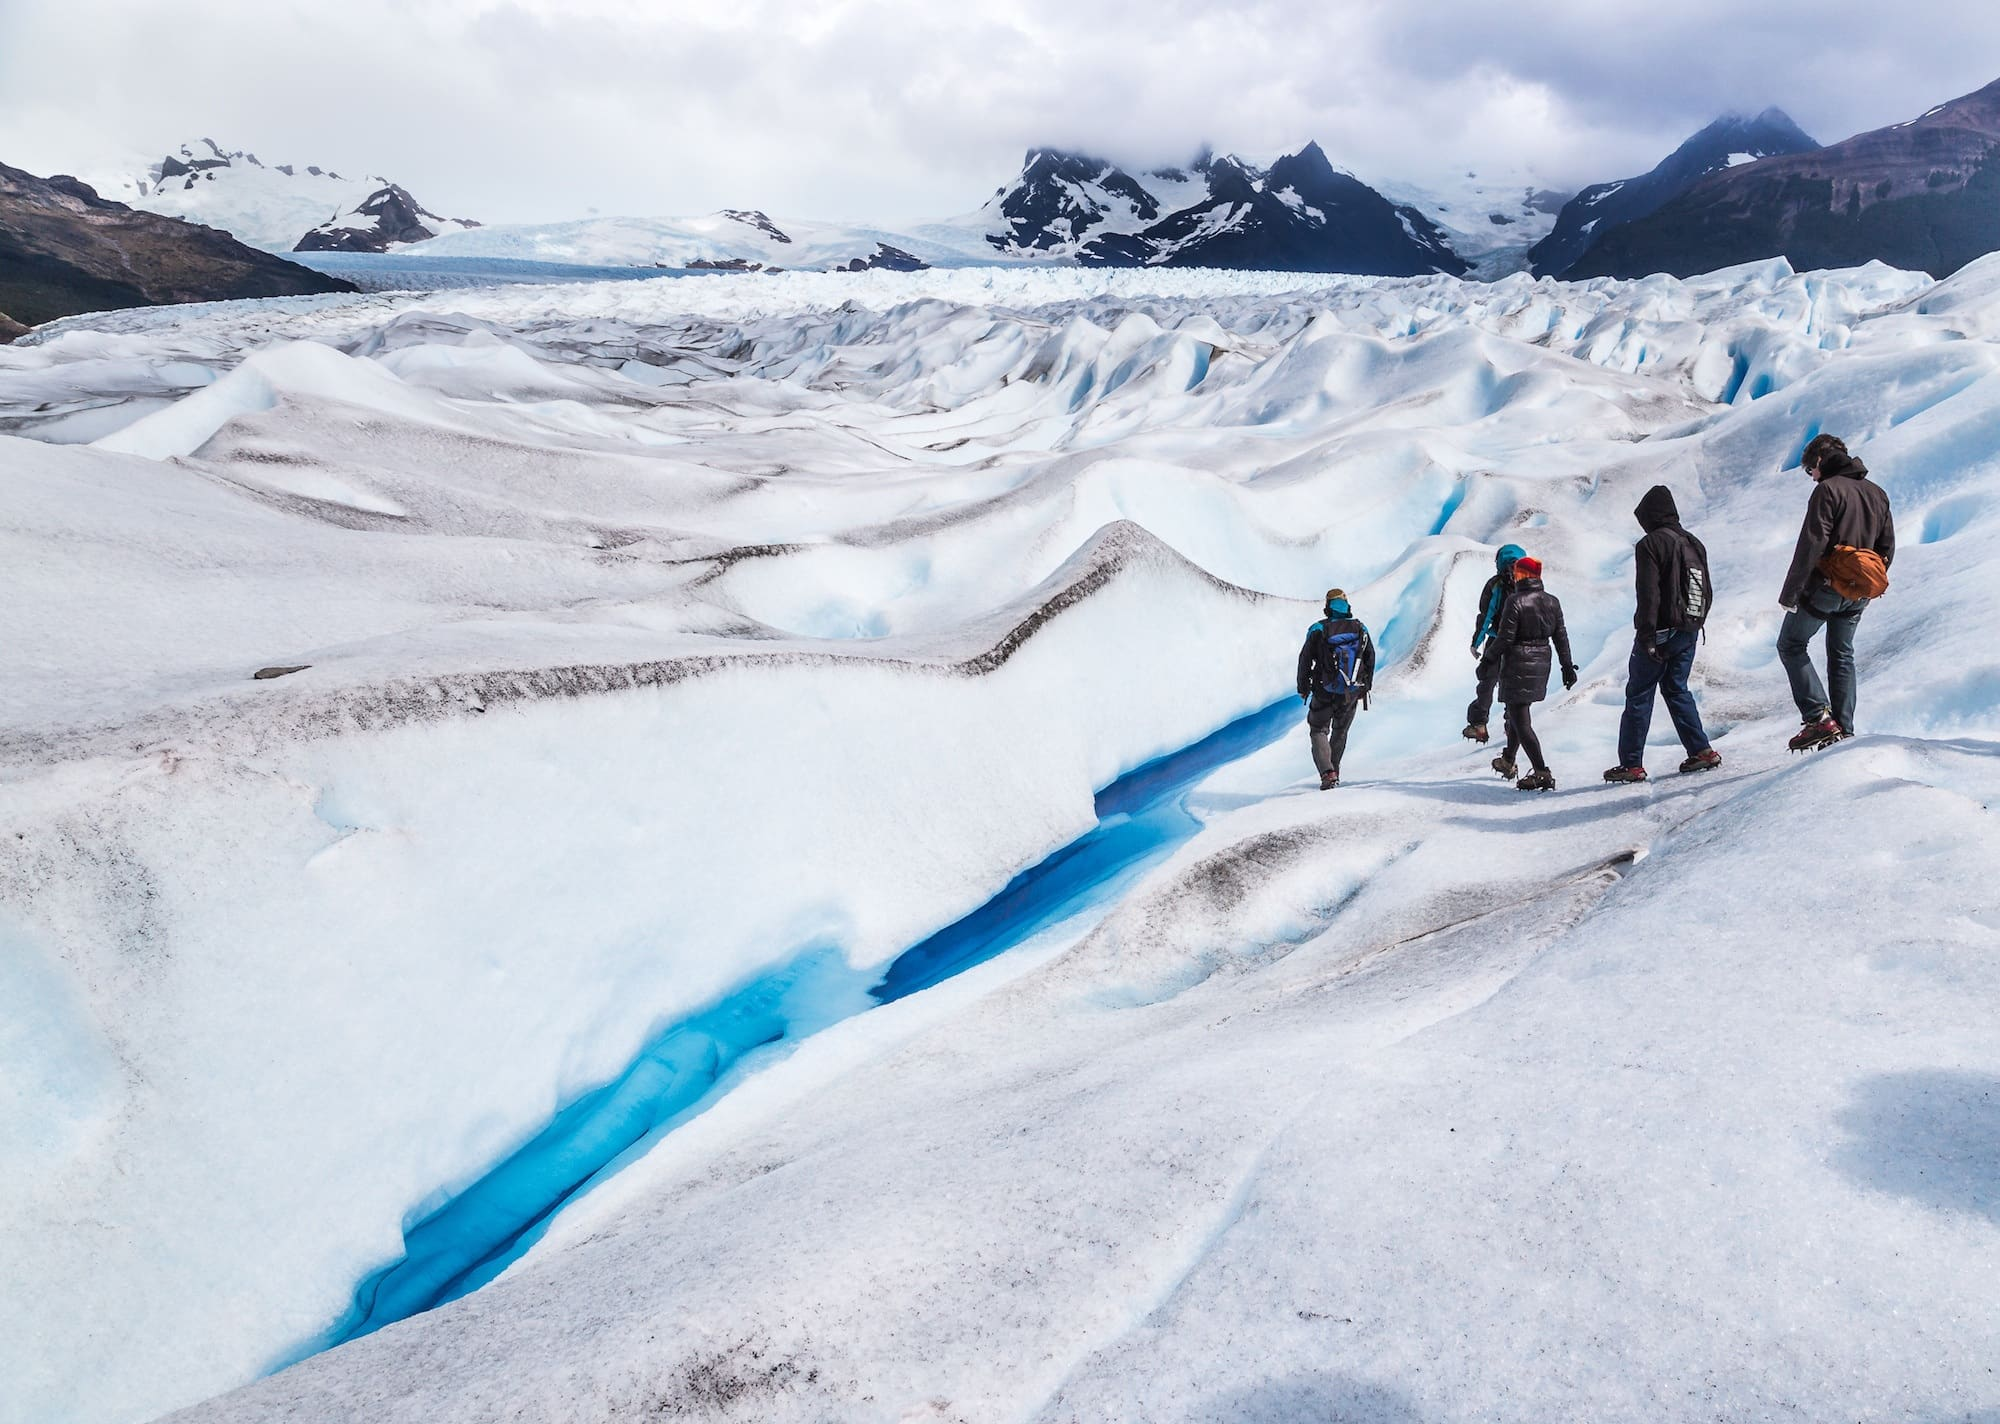 Discover Perito Moreno Glacier, local estancias, the best restaurants & town highlights with our list of the best things to do in El Calafate.